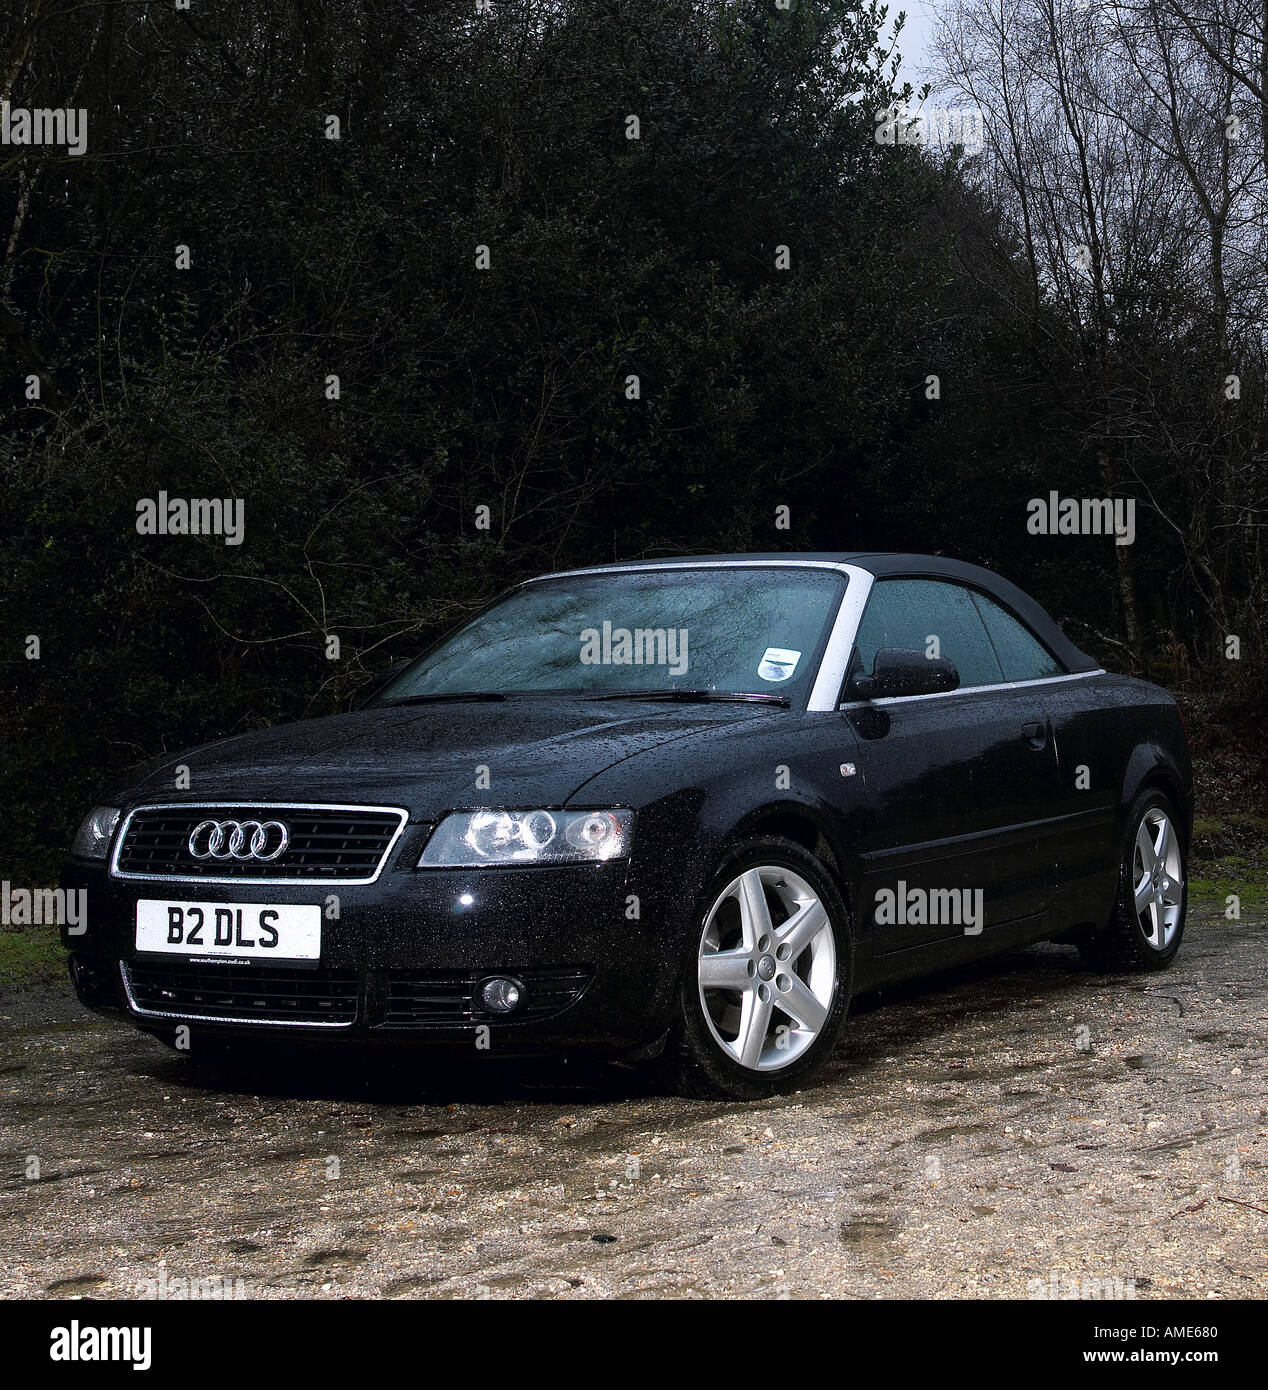 Audi A4 Convertible Stock Photos & Audi A4 Convertible